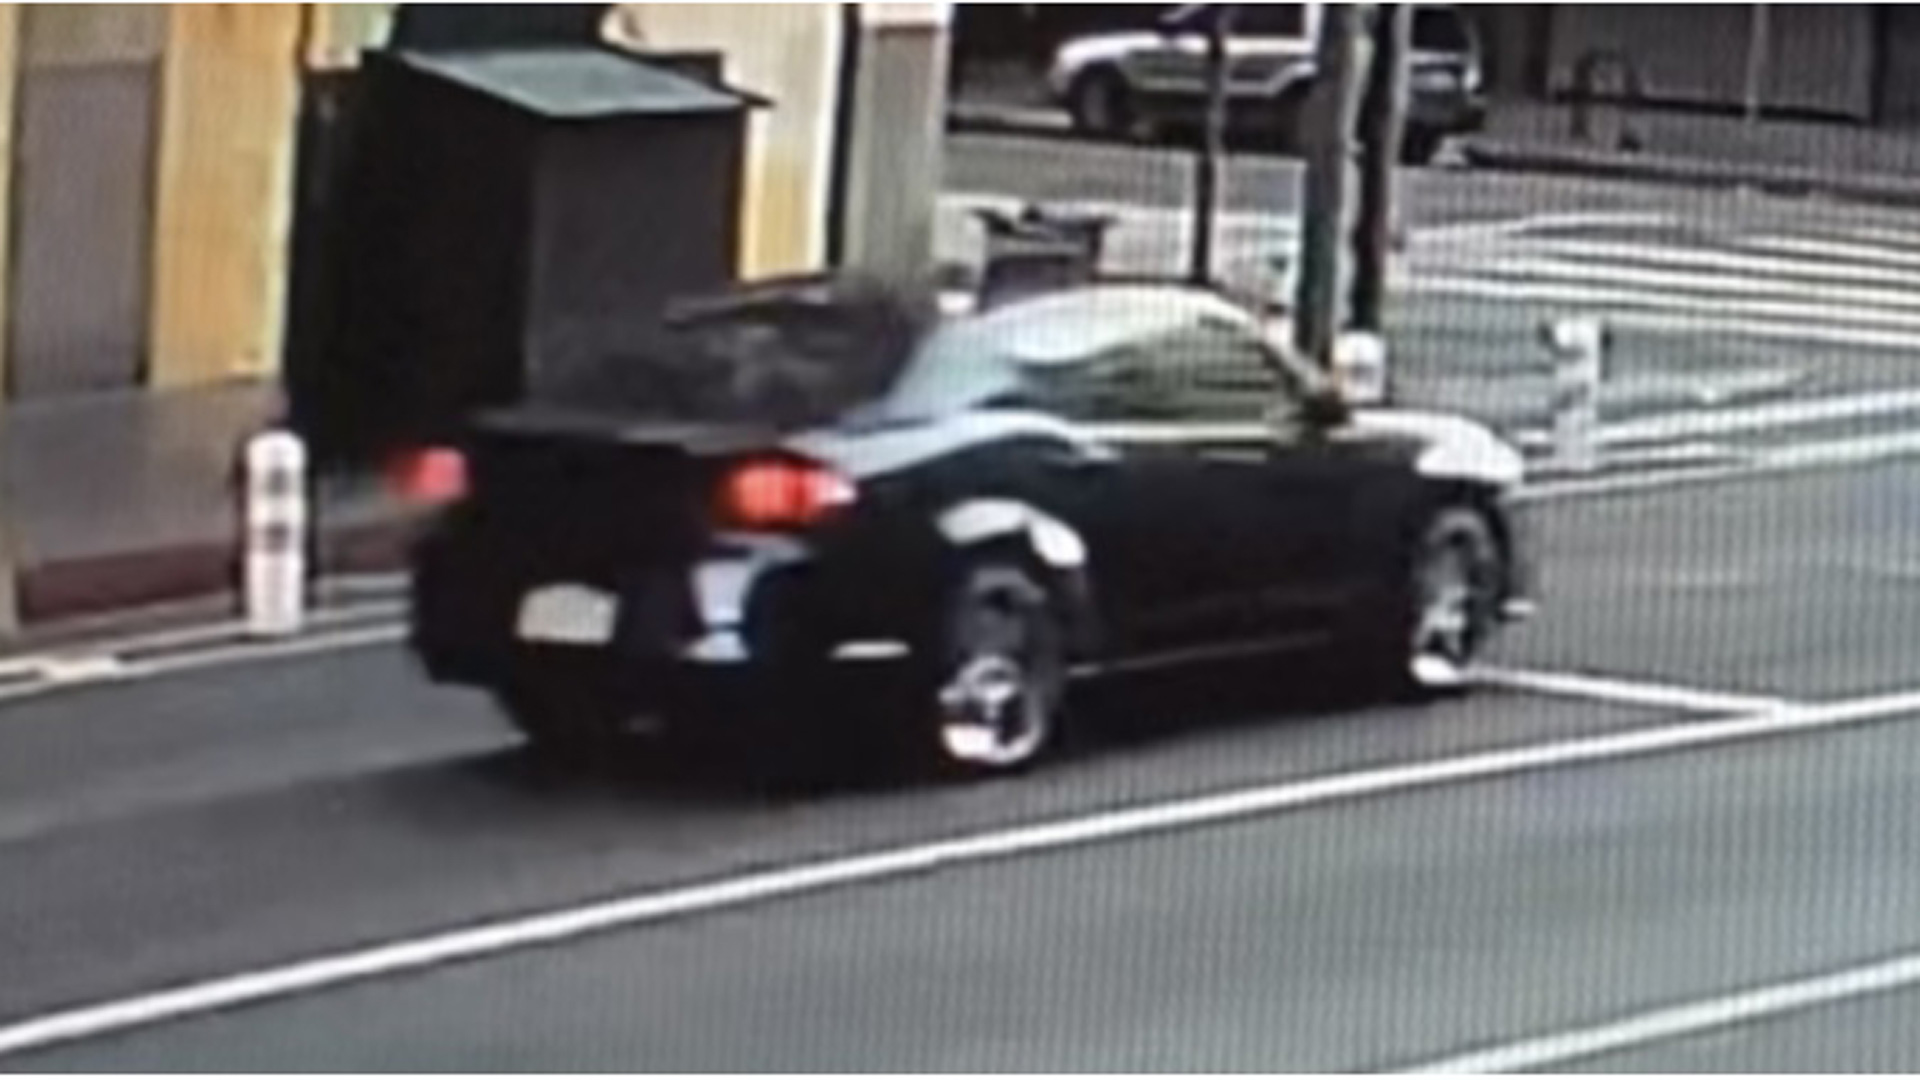 On Nov. 15, 2020, the Los Angeles Police Department released this image of car wanted in a hit-and-run.